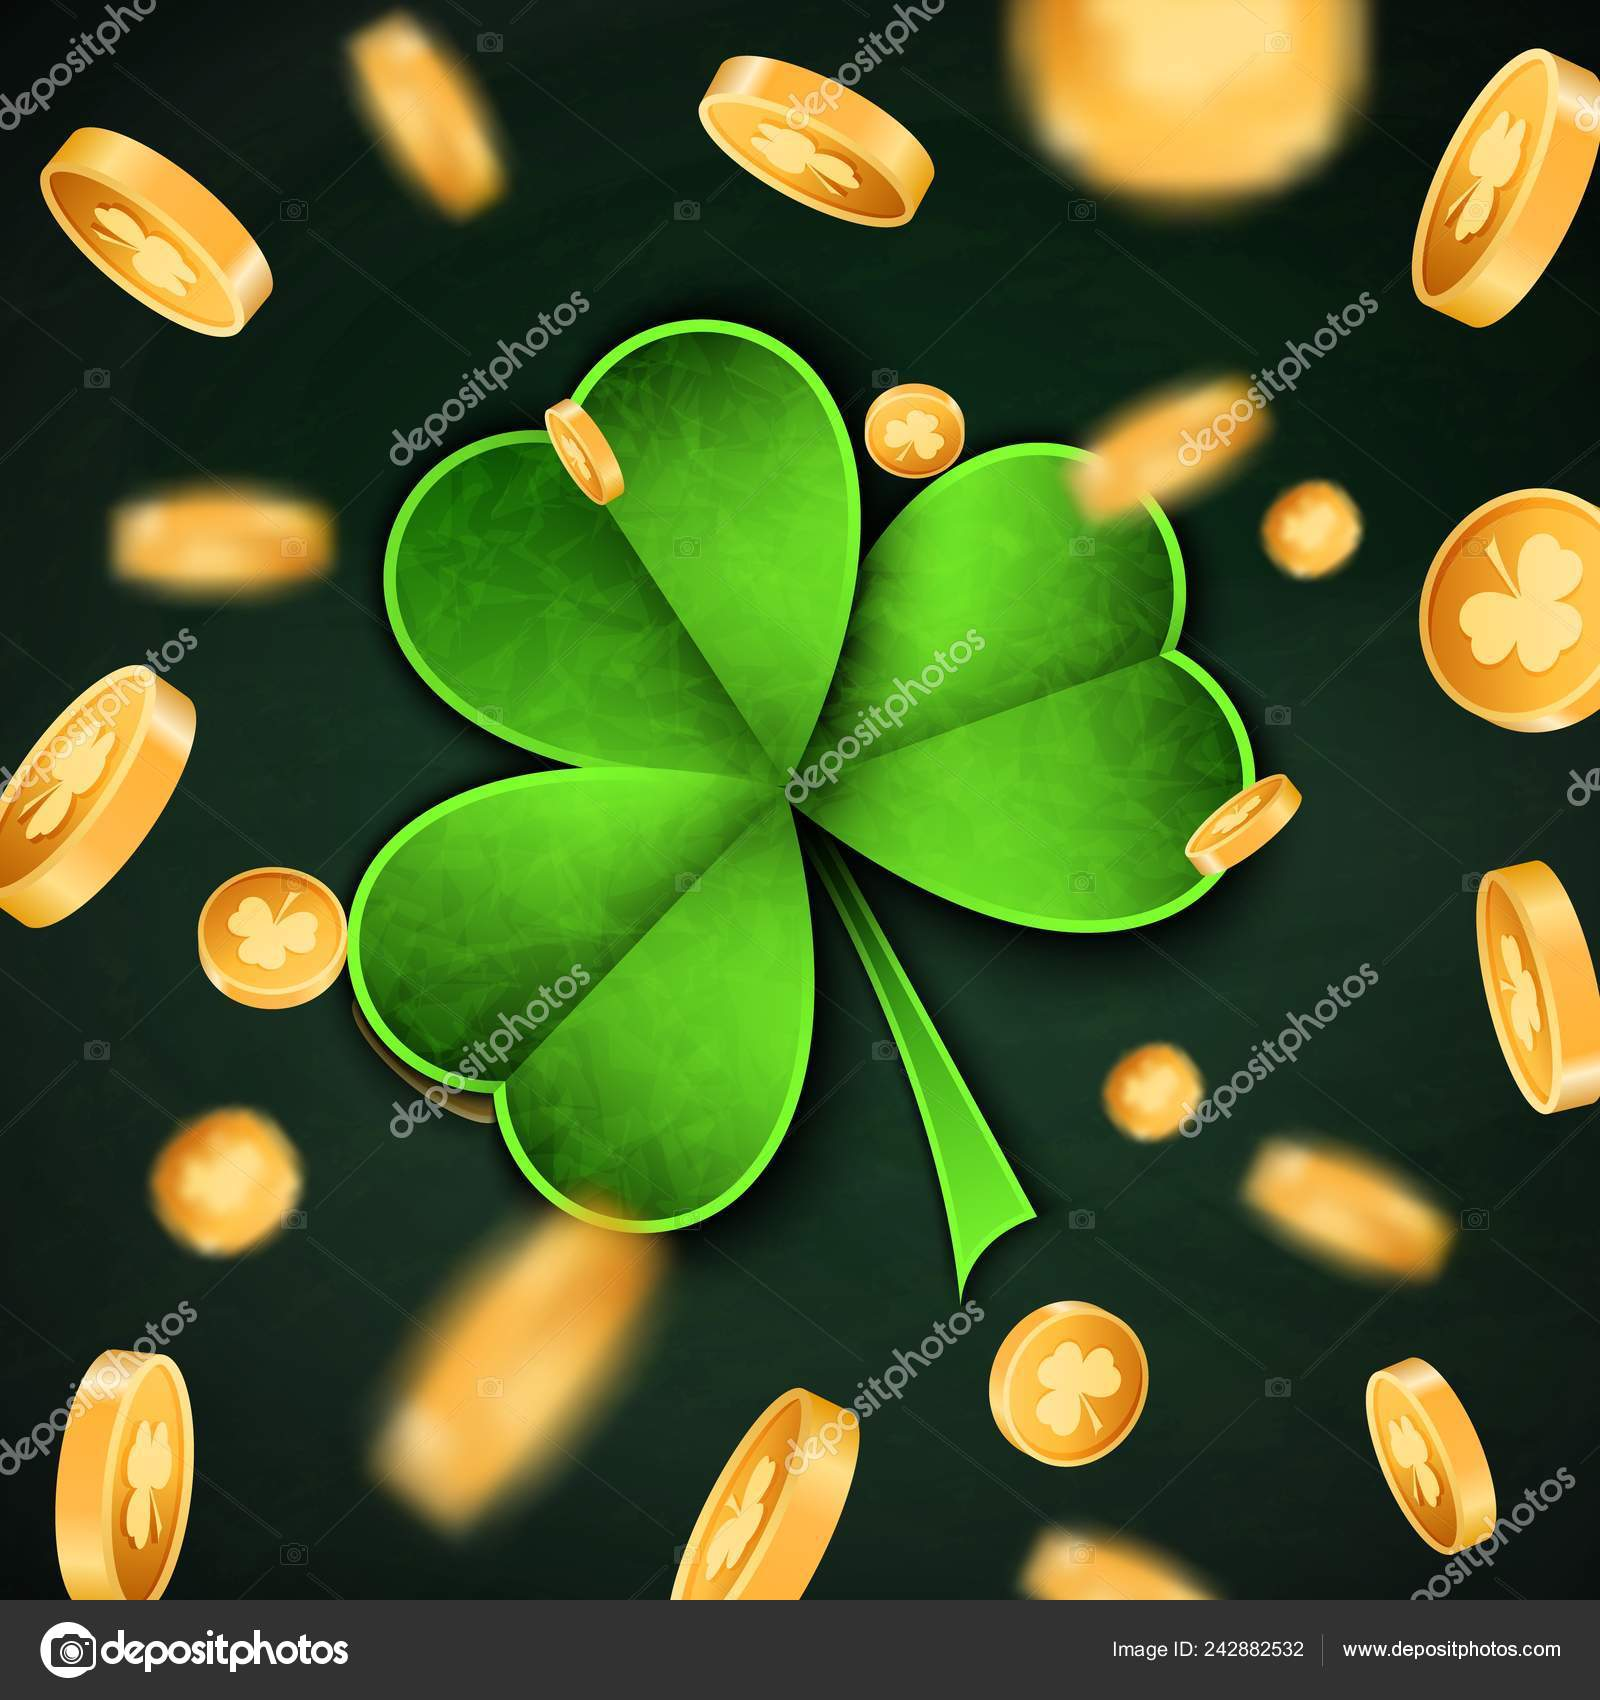 3d Gold Lucky Coins And Saint Patrick Day Traditional Symbol